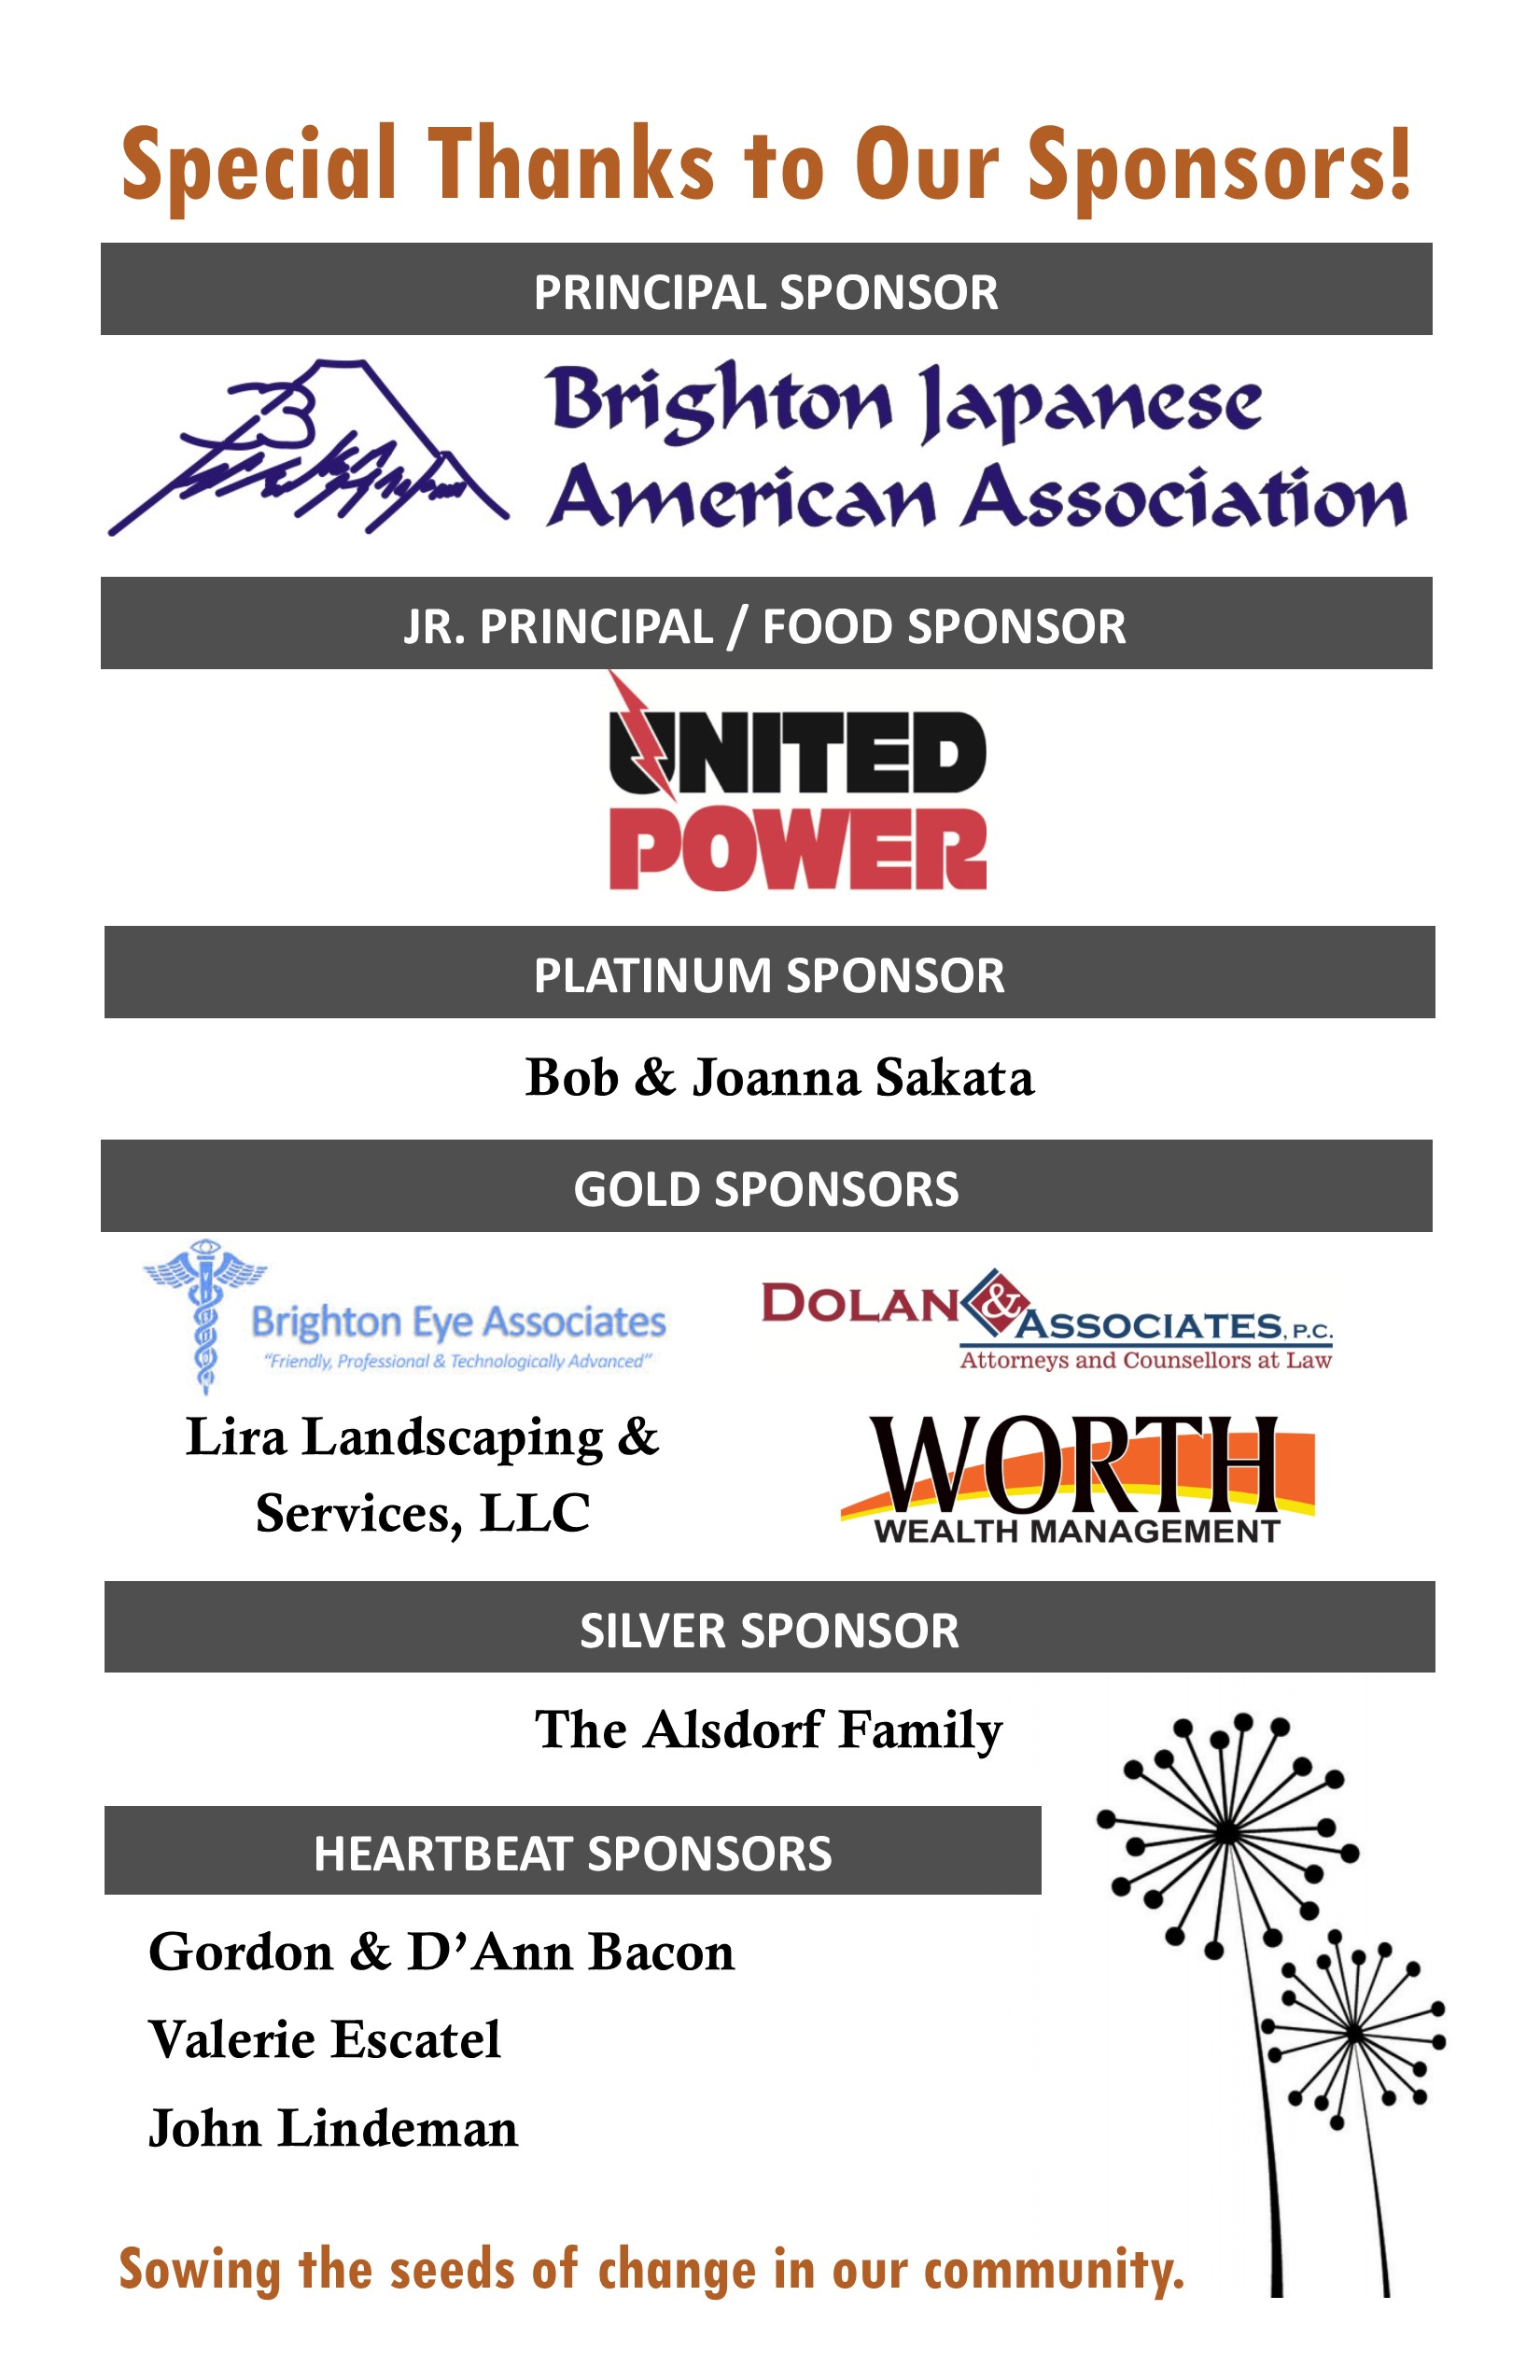 Special Thanks to Our Sponsors!